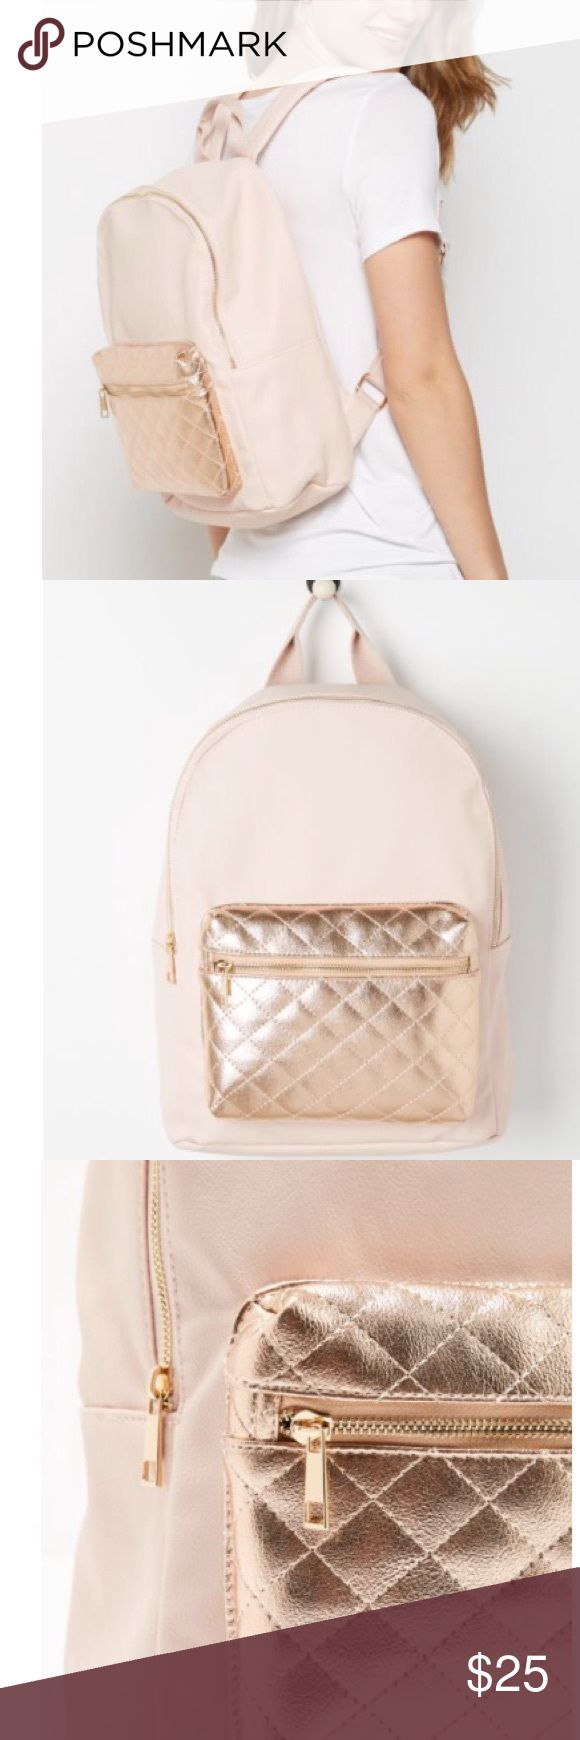 Pink and rose gold backpack Faux leather backpack with rose gold pouch pocket in quilted metallic vinyl. Base approx:5 x 12 in, height approx 14 in, adjustable shoulder straps, zip closure, inside zip compartment. We are a non smoking home. Brand new no tag Bags Backpacks